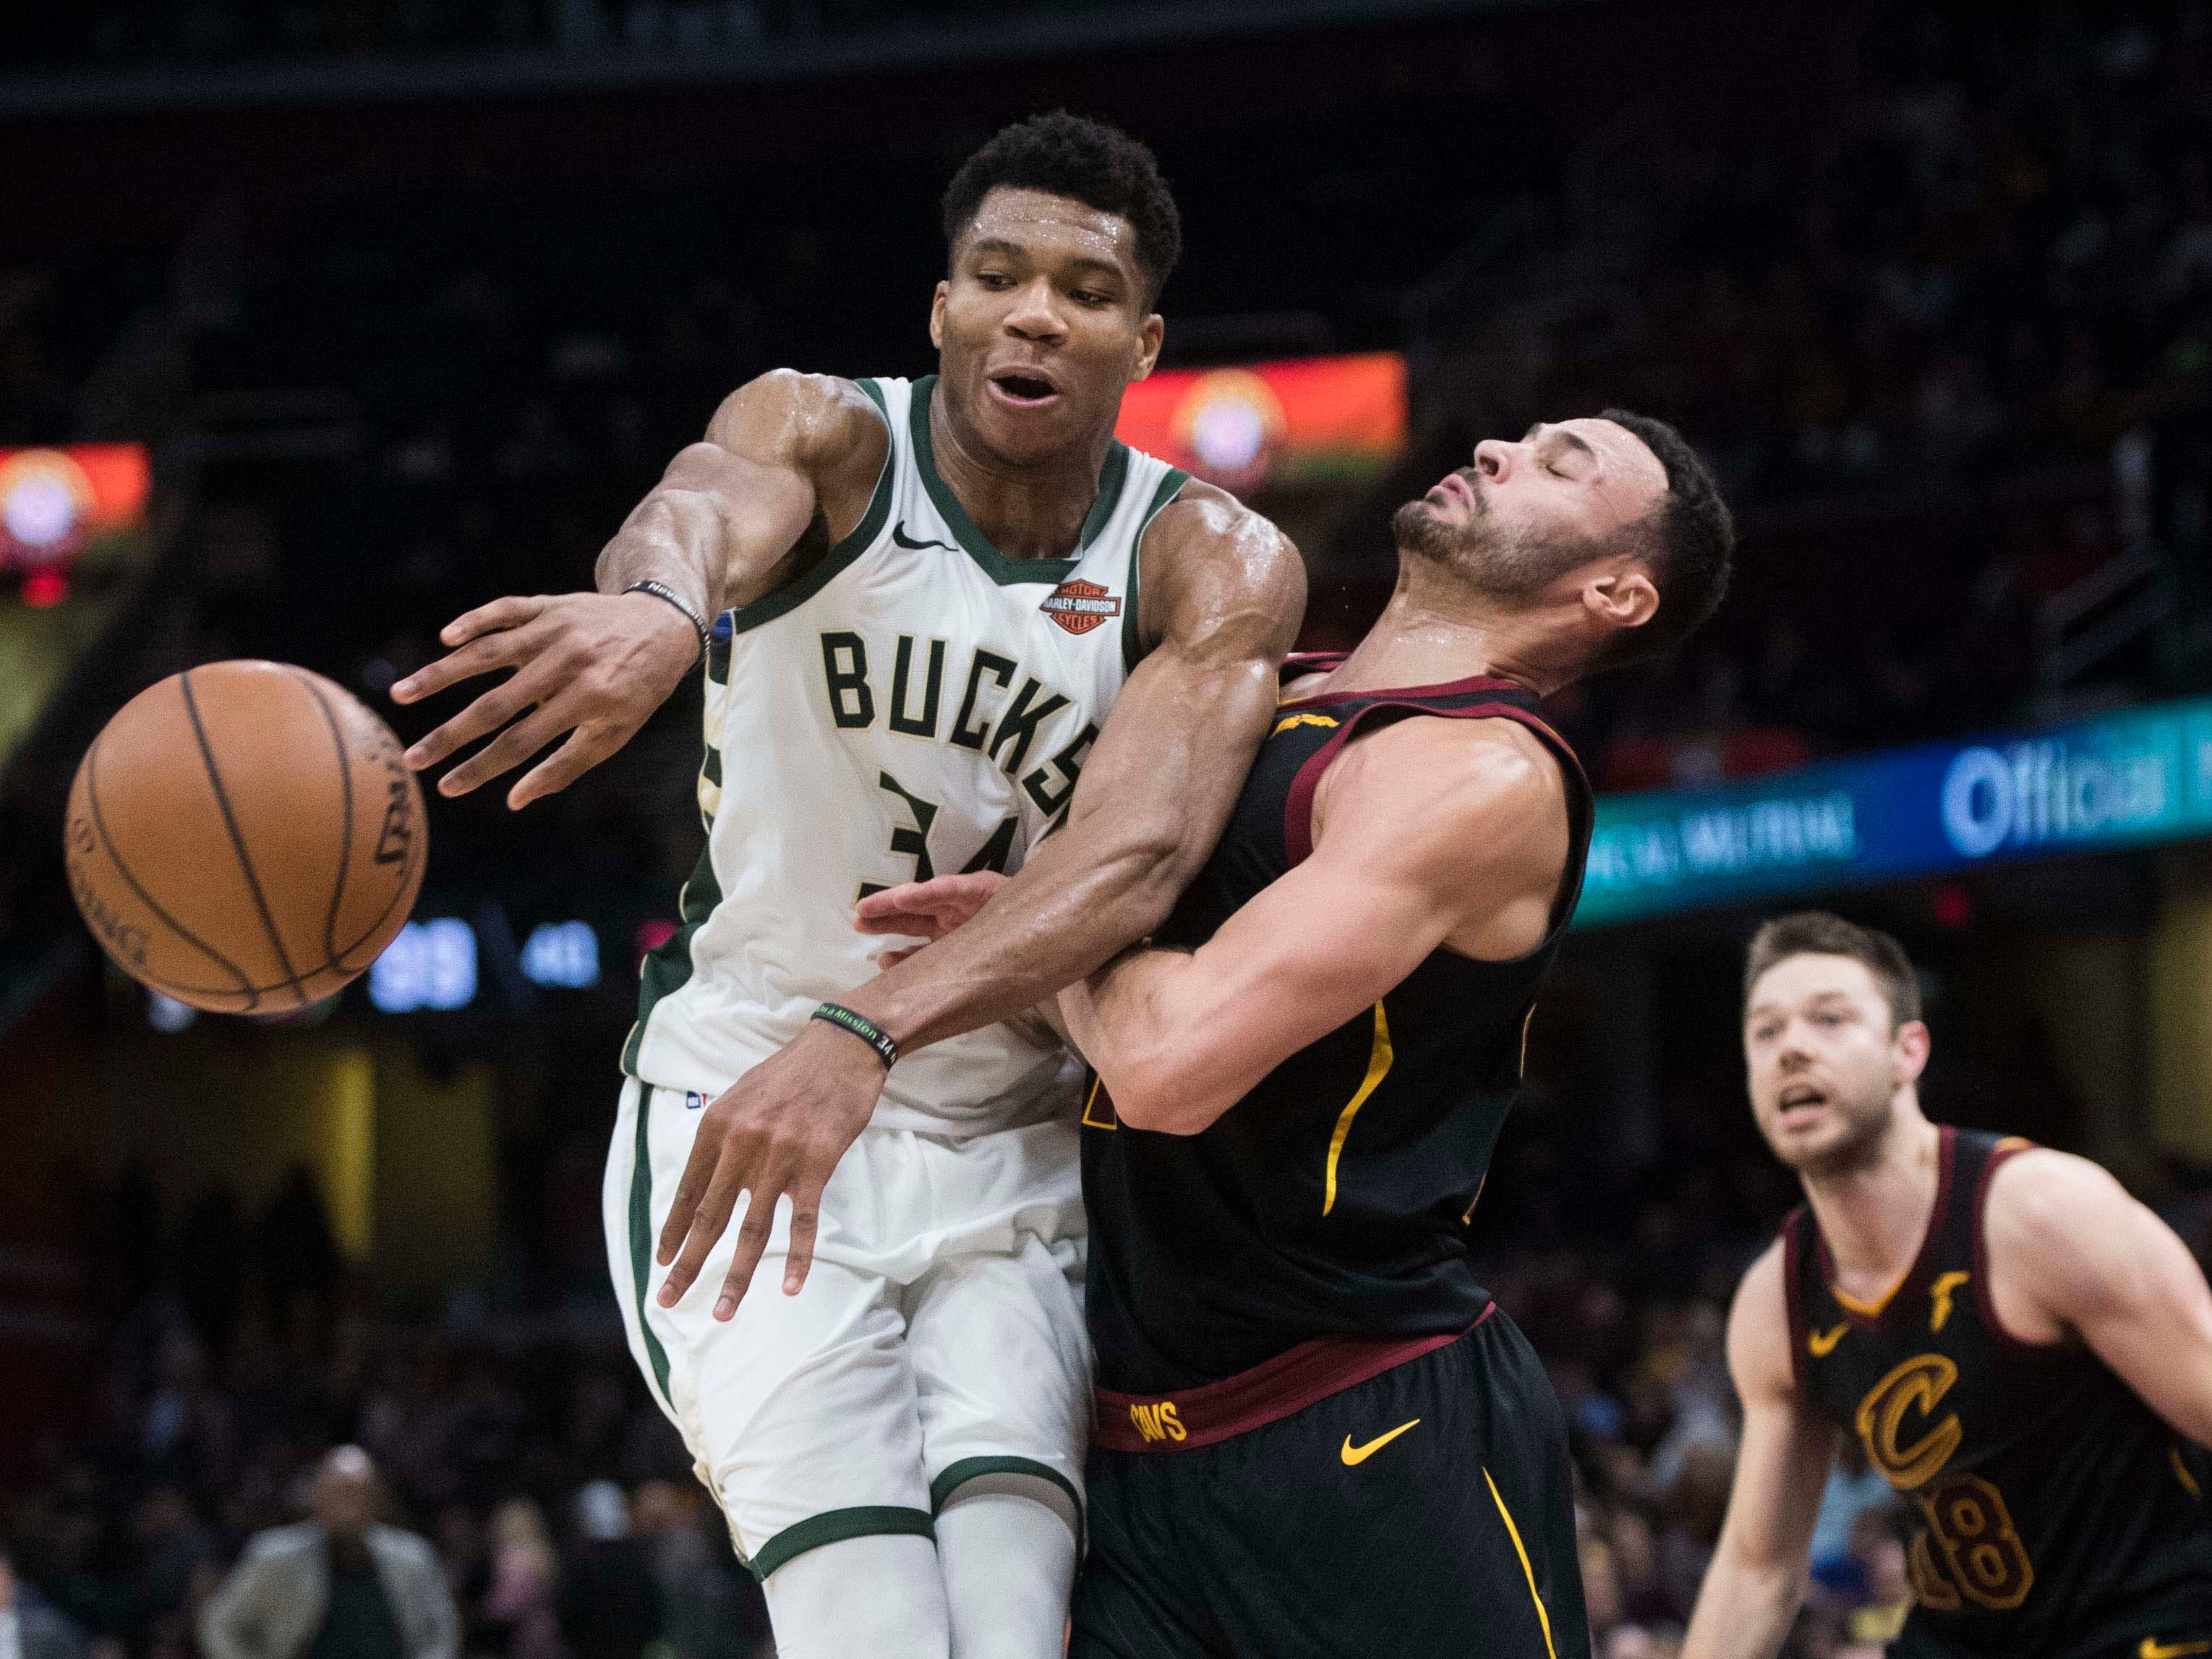 Bucks forward Giannis Antetokounmpo passes the ball as Cleveland Cavaliers forward Larry Nance Jr. defends.